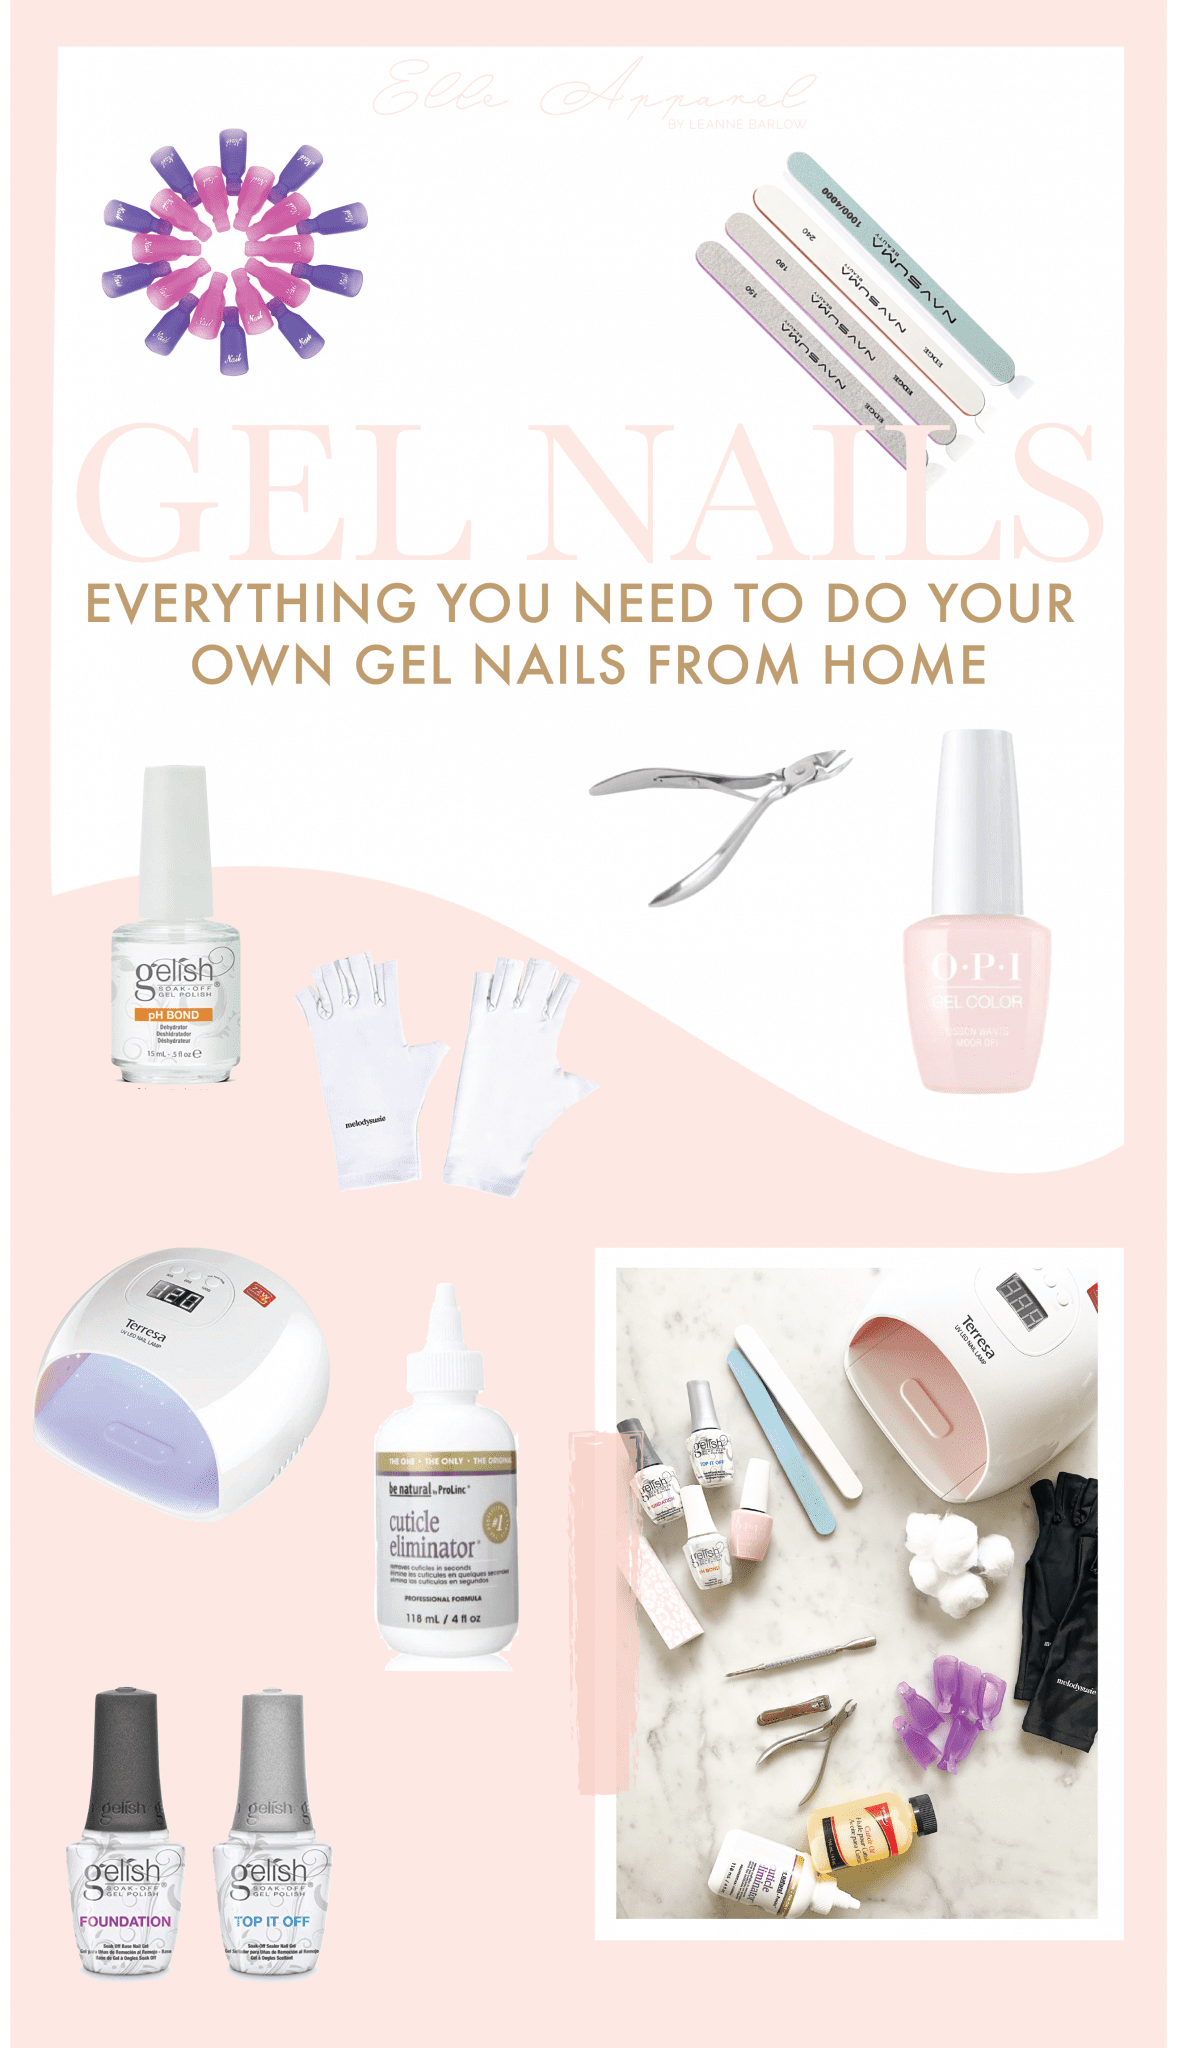 How to remove and do your own gel nails from home